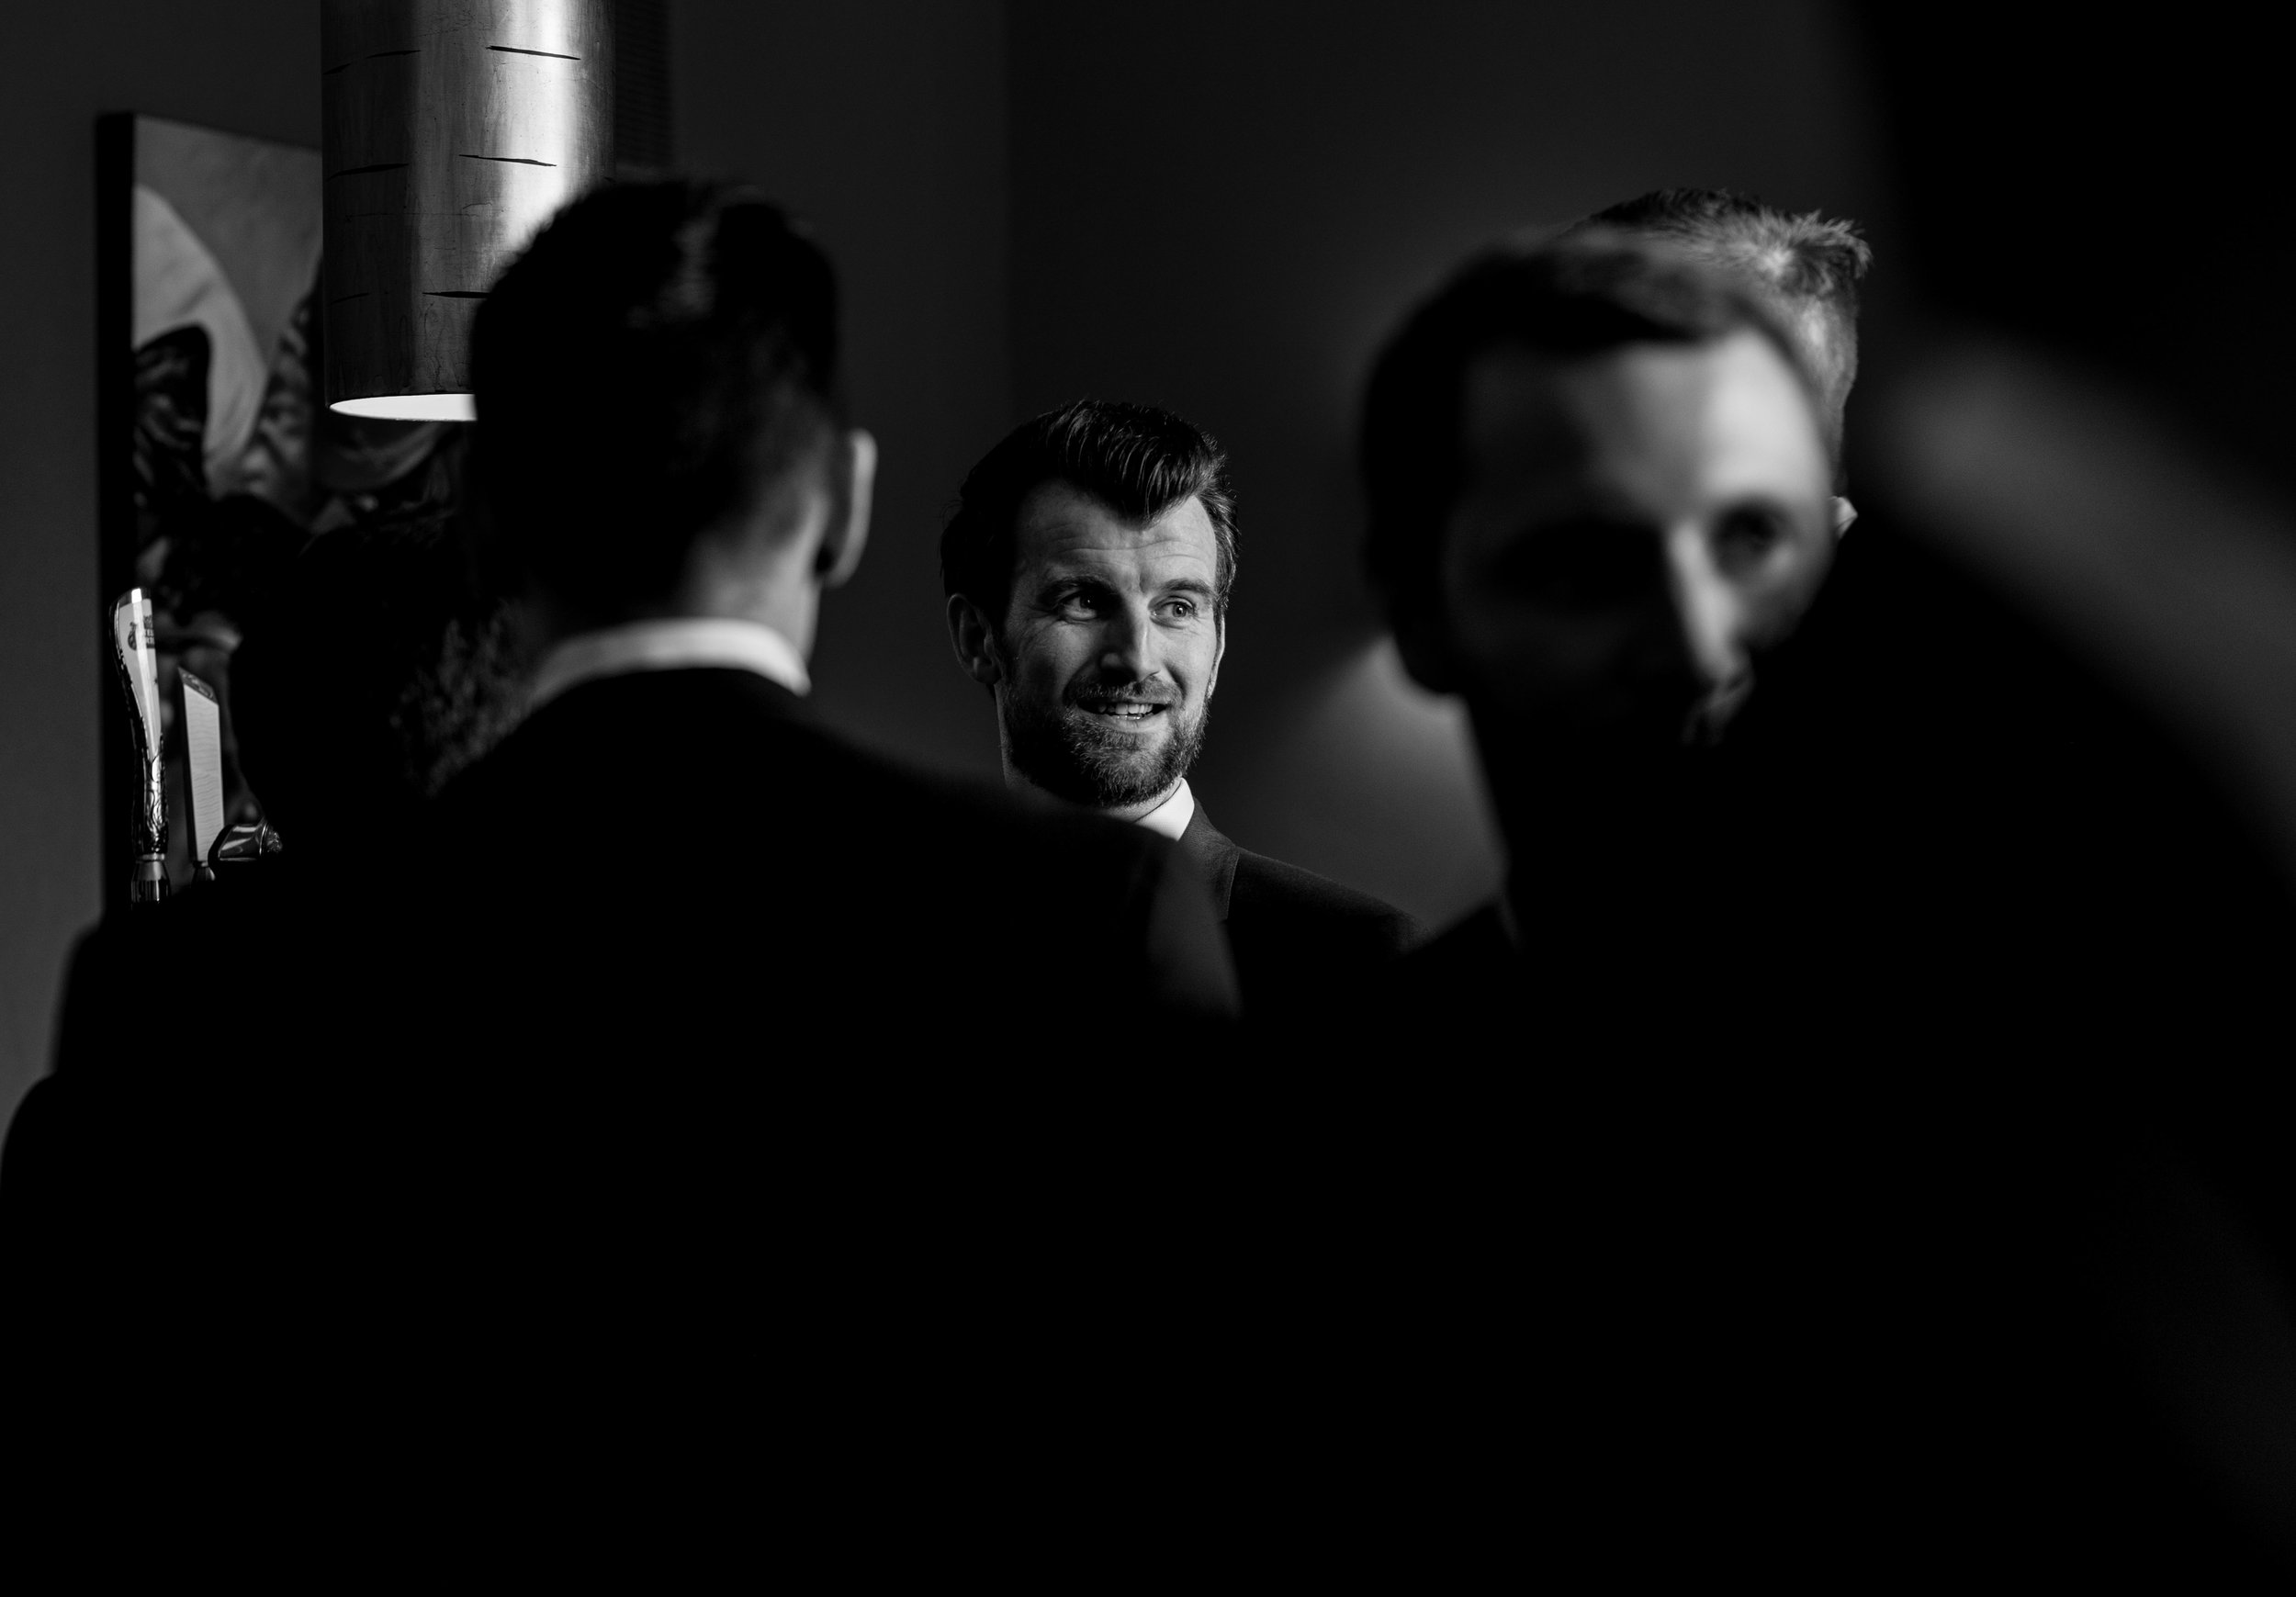 a male wedding guest lit up with the sunlight coming through the window